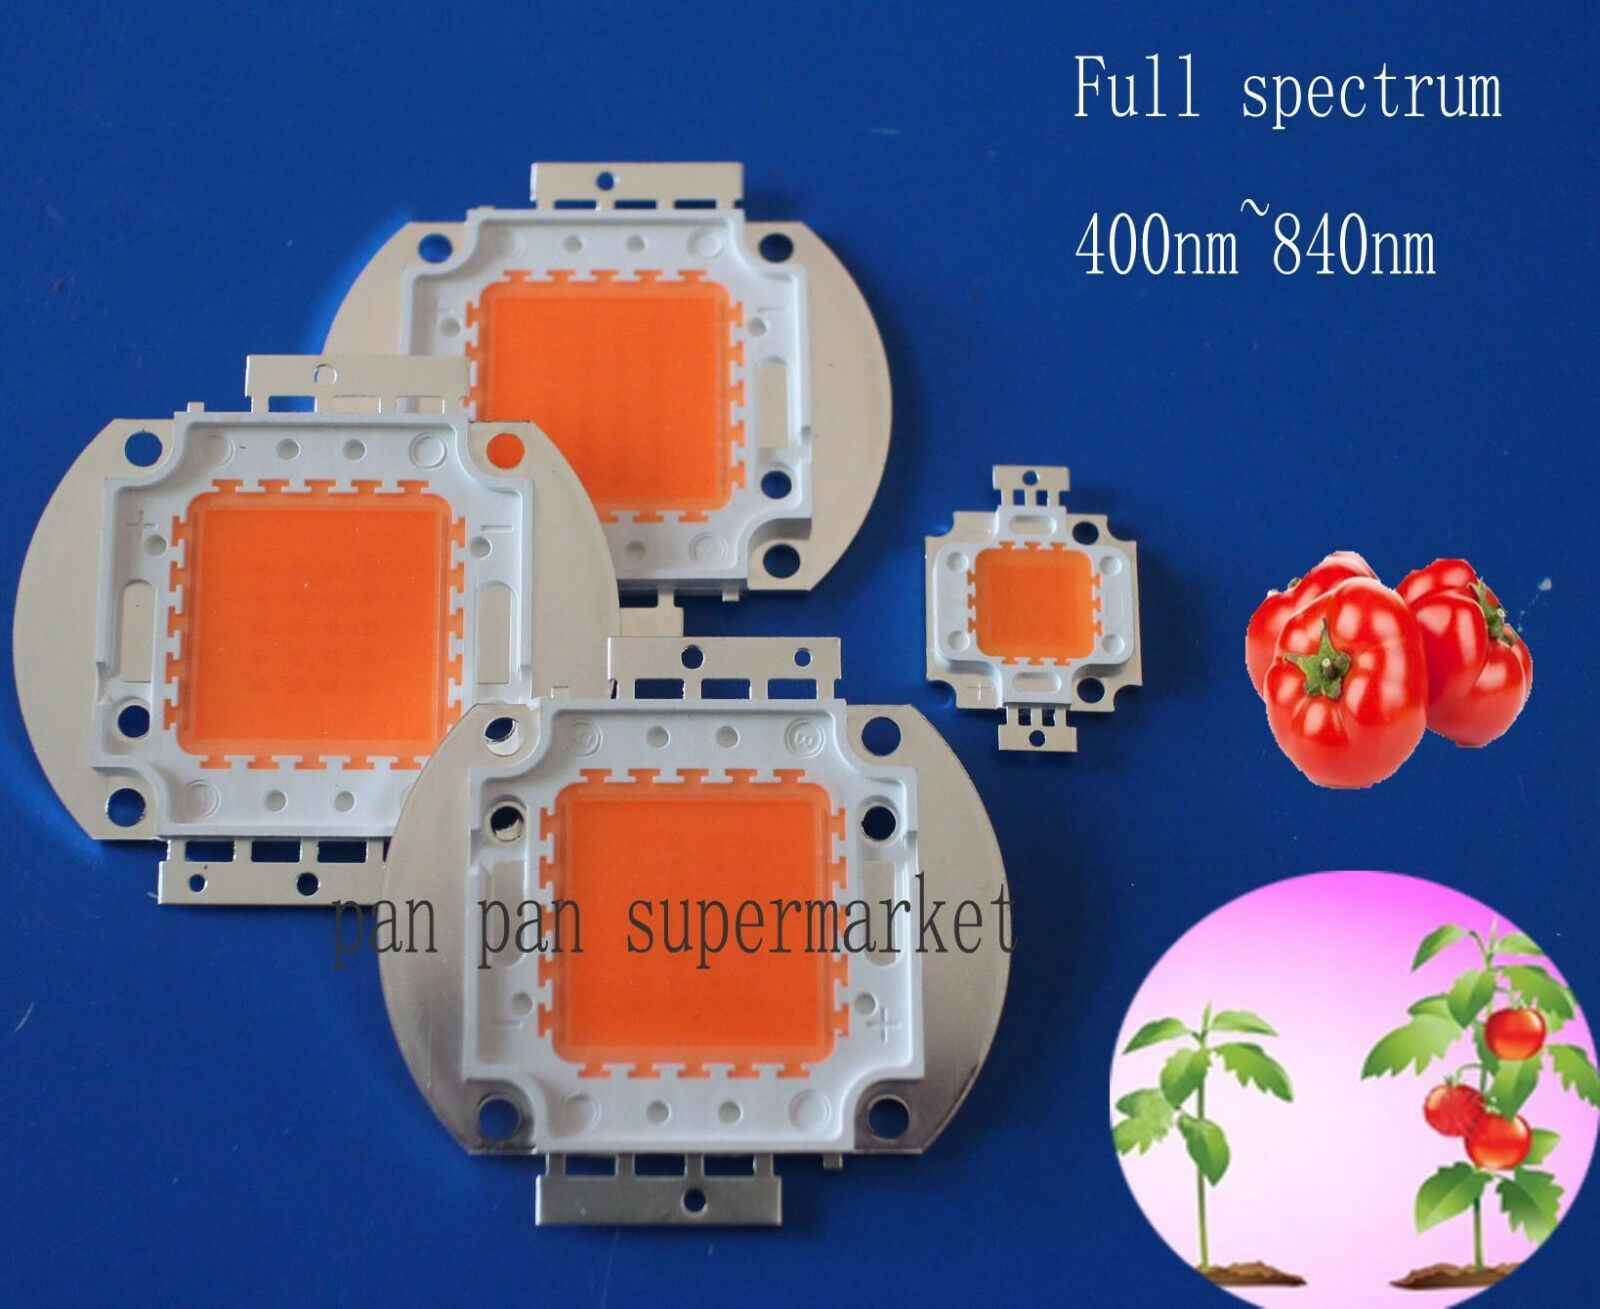 Full Spectrum LED Grow Chip 380-840nm Nyata Watt 1W 3W 10W 20W 30W 50W 100W 35mil LED Lampu Tanam Kualitas Cahaya